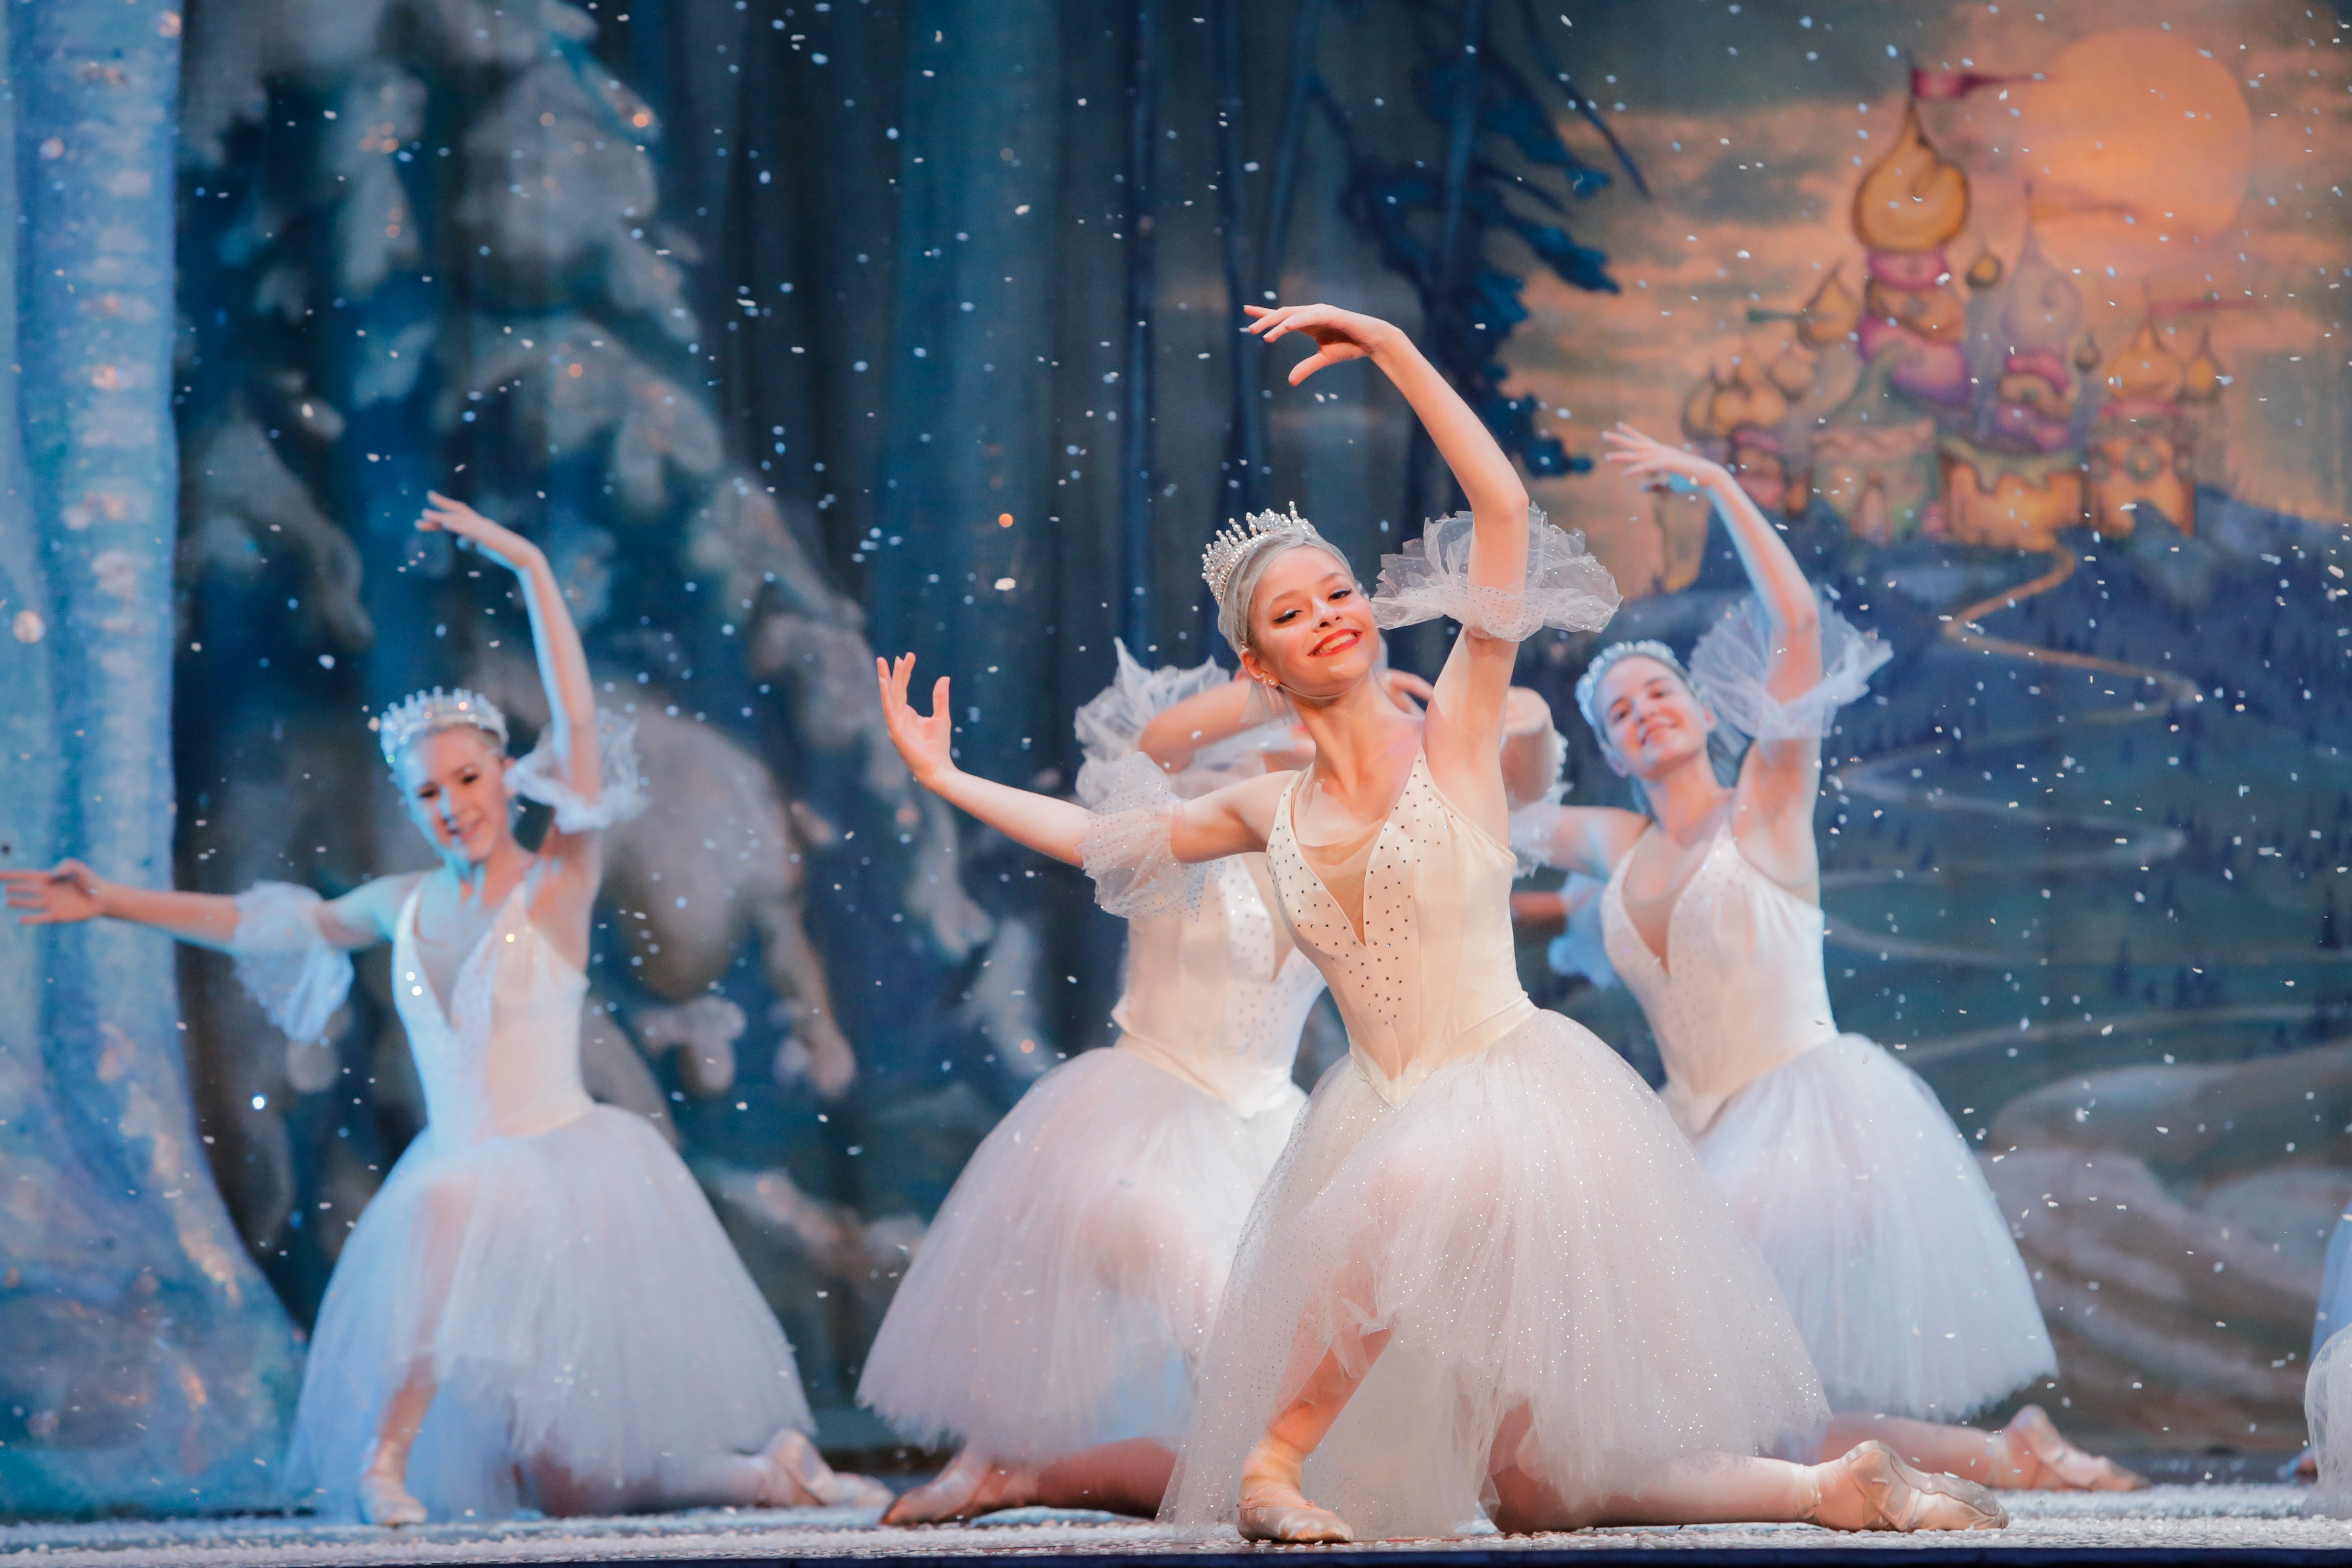 <p>The acclaimed Nutcracker of Middle Georgia will get a boost from Mercer University and the Grand Opera House who will partner to provide improved marketing and administration for the ballet. Photo courtesy of Nutcracker of Middle Georgia.</p>